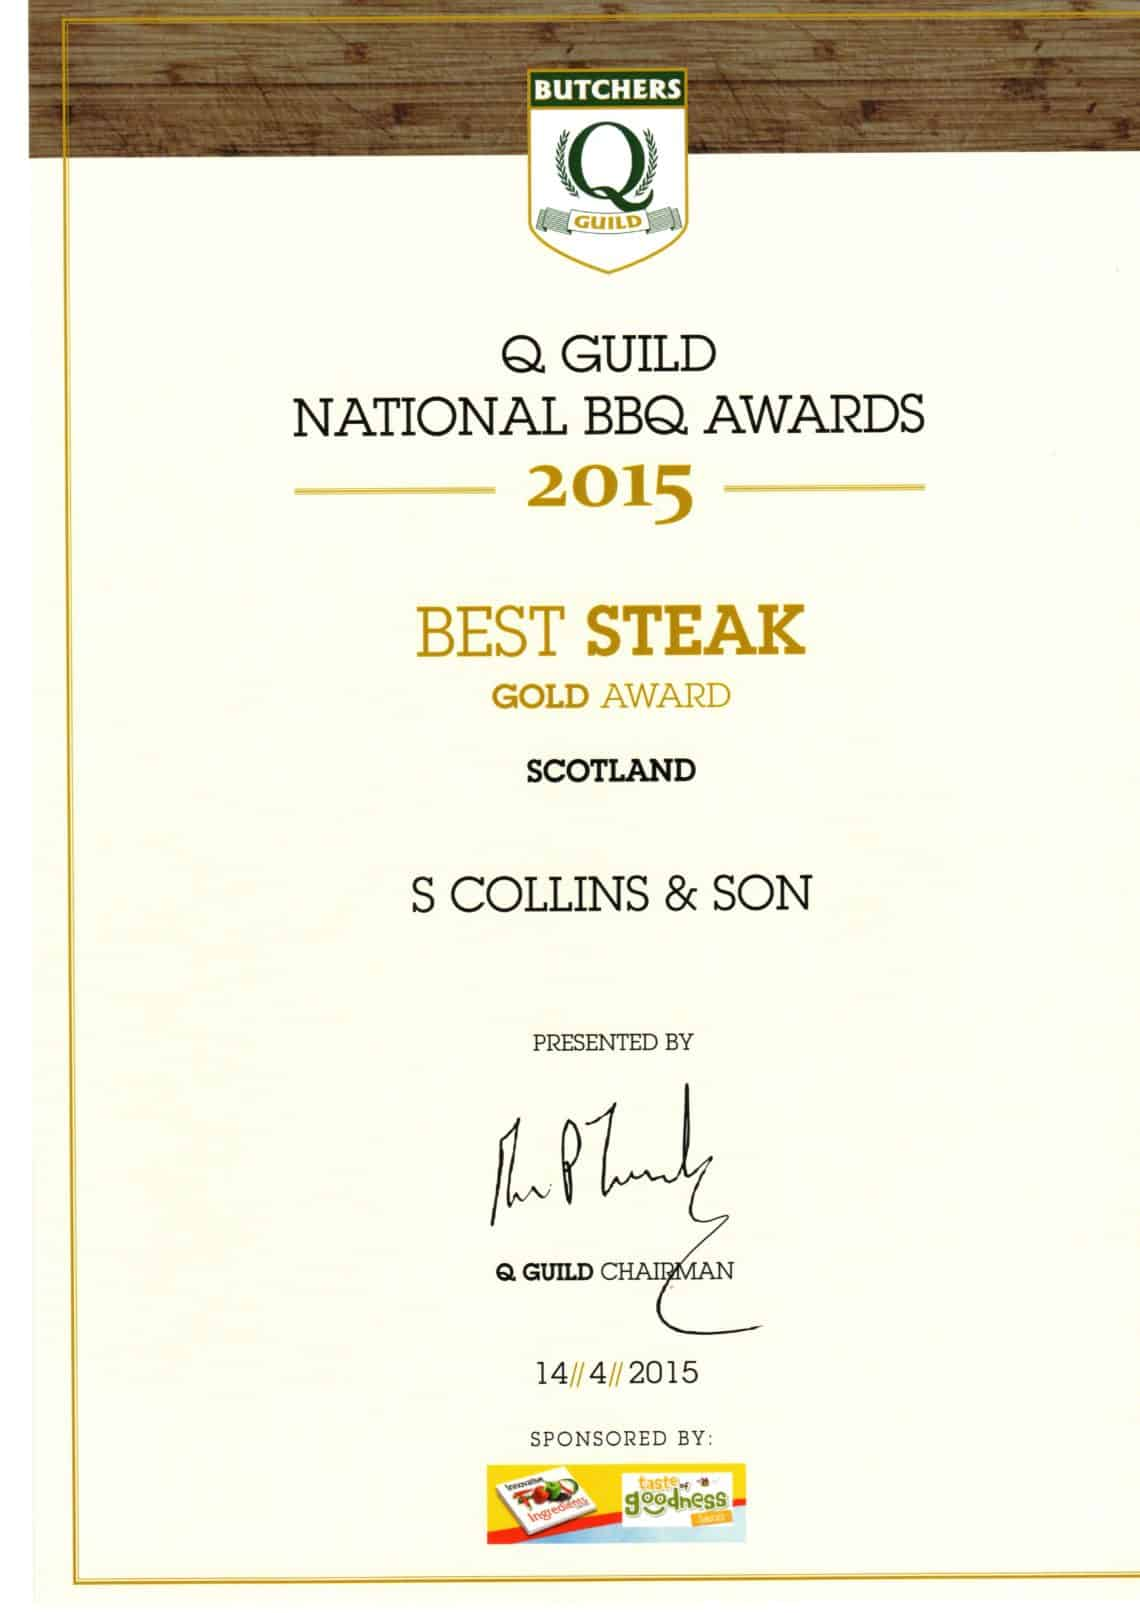 National BBQ Awards 2015: Best Steak